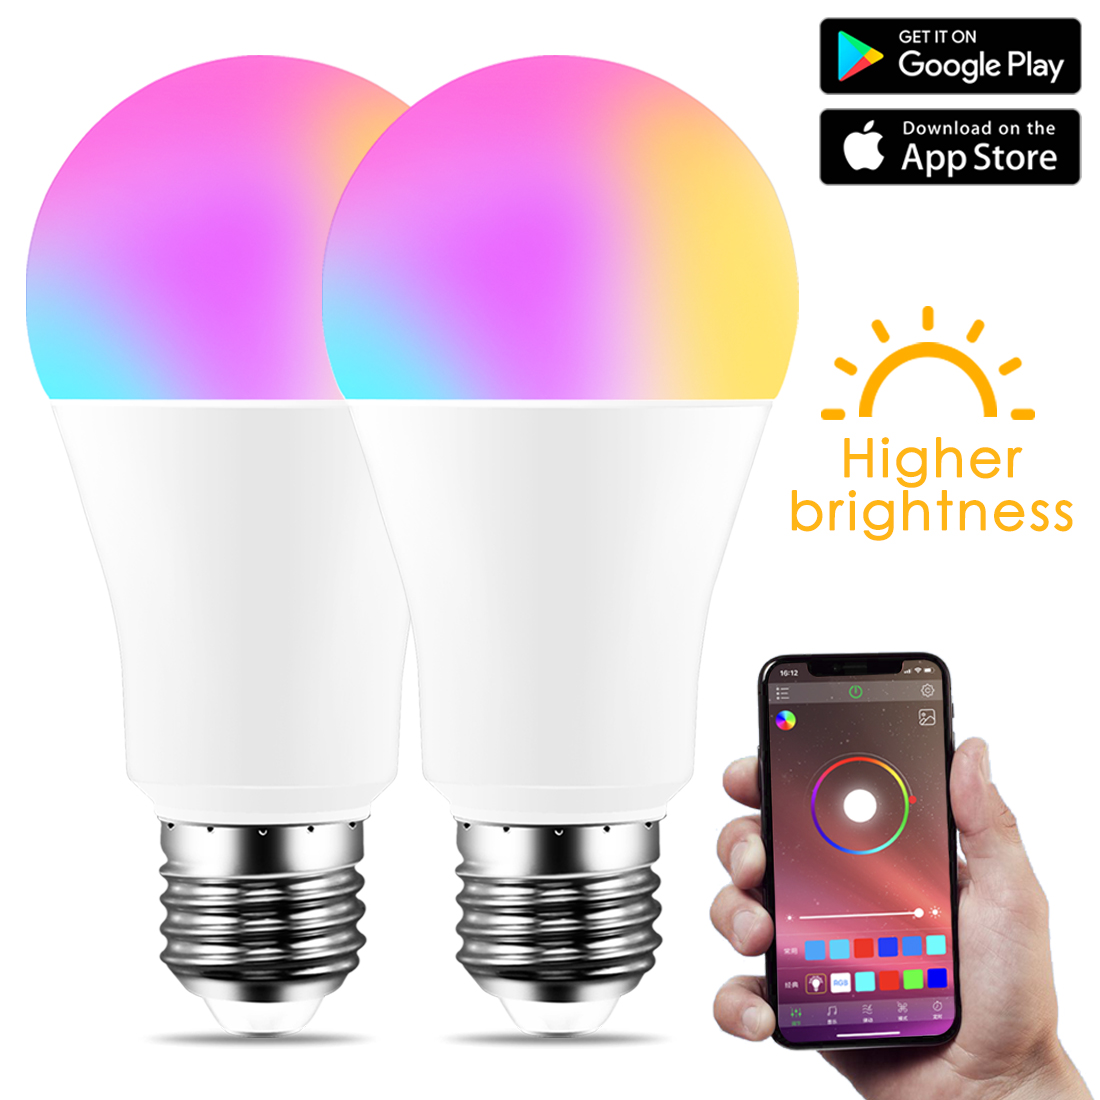 New Wireless Bluetooth 4.0 Smart Bulb Home Lighting Lamp 10W E27 Magic RGB +W LED Change Color Light Bulb Dimmable IOS /Android(China)